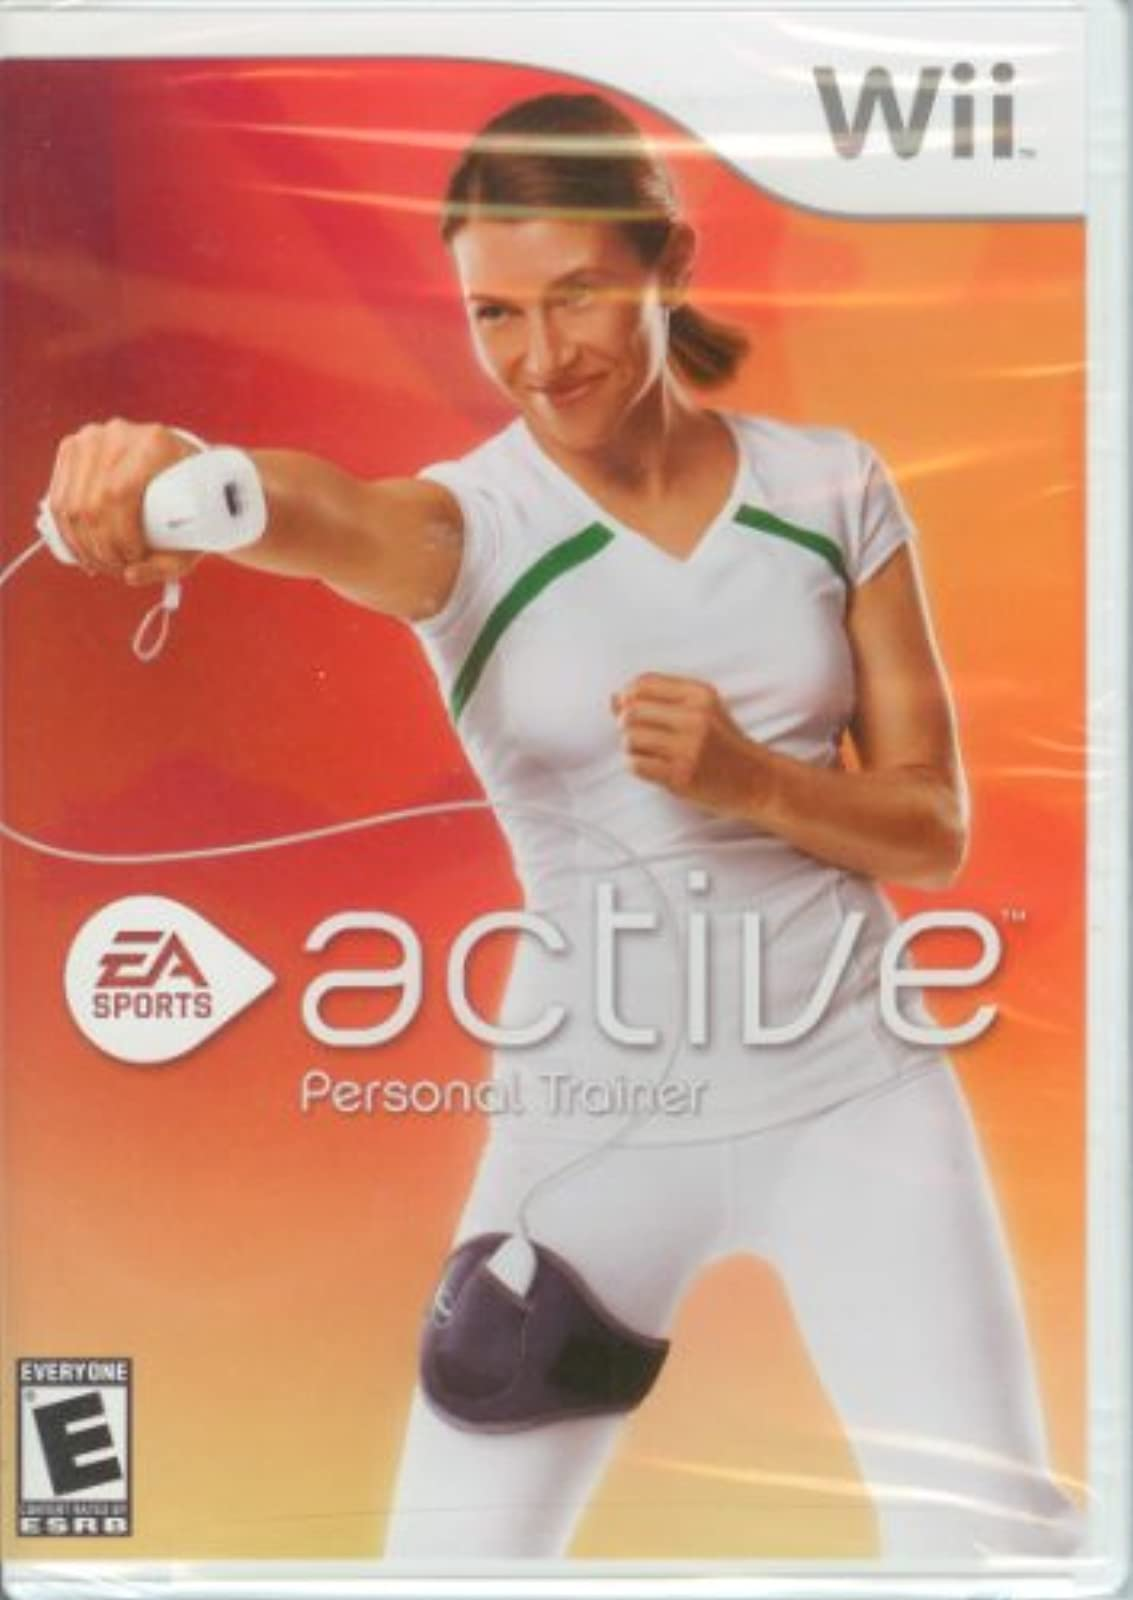 Active Personal Trainer For Wii And Wii U